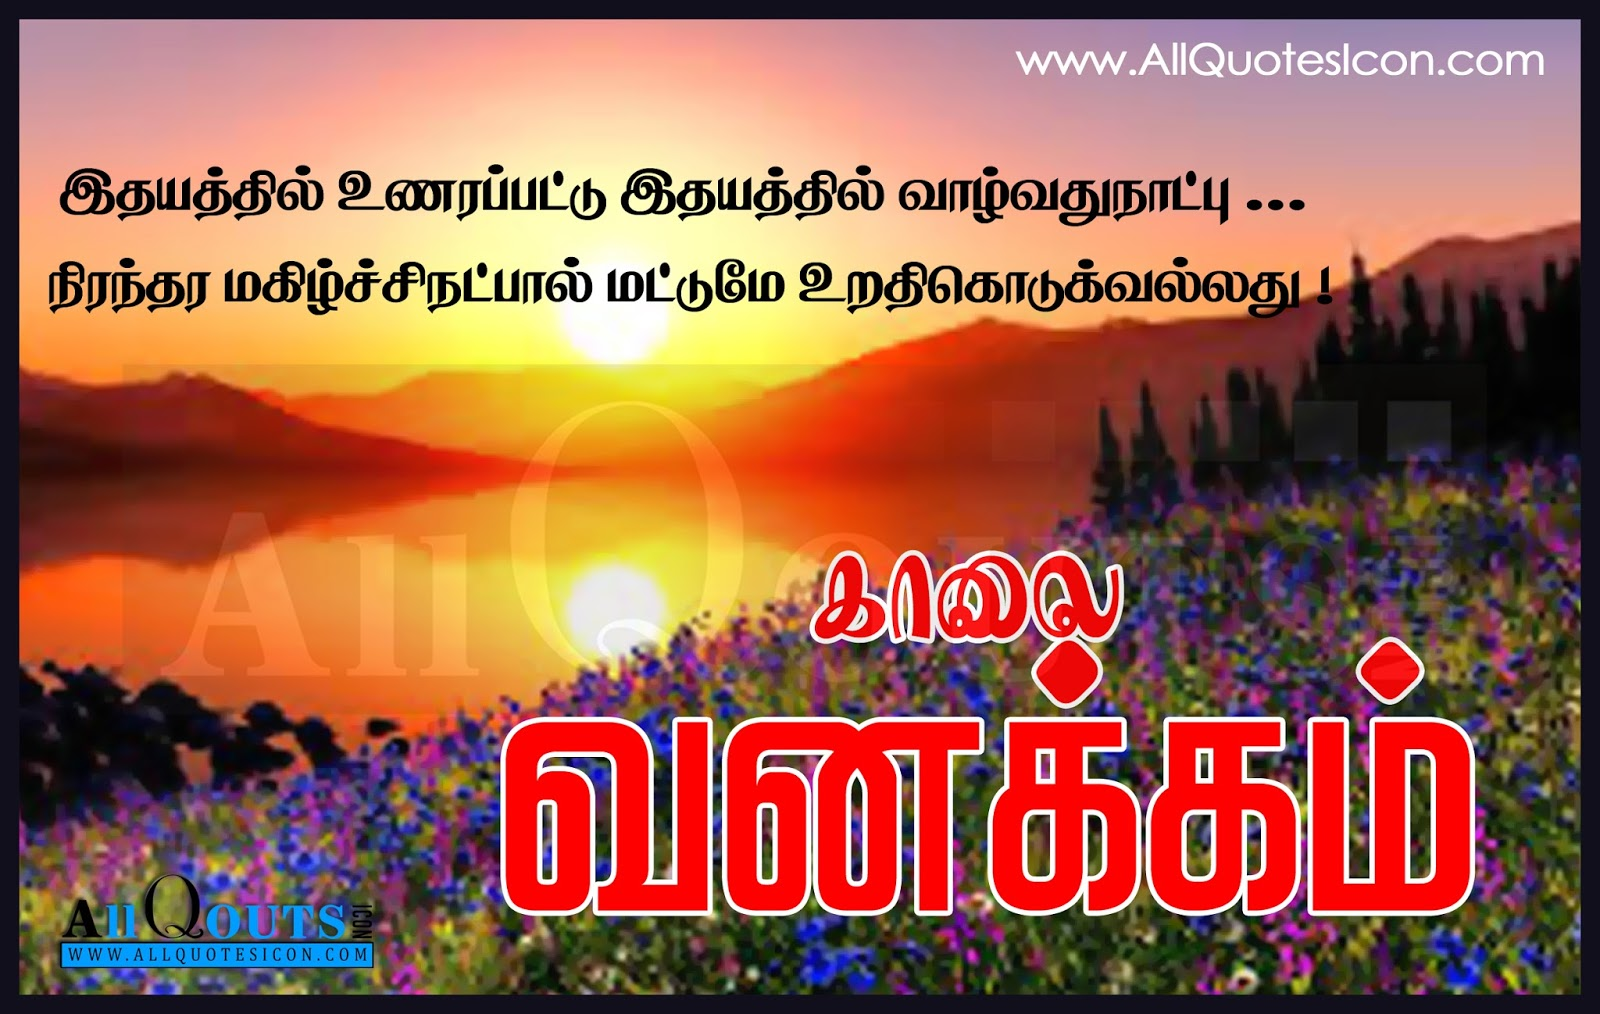 Good Morning Wishes And Greetings In Tamil Allquotesicon